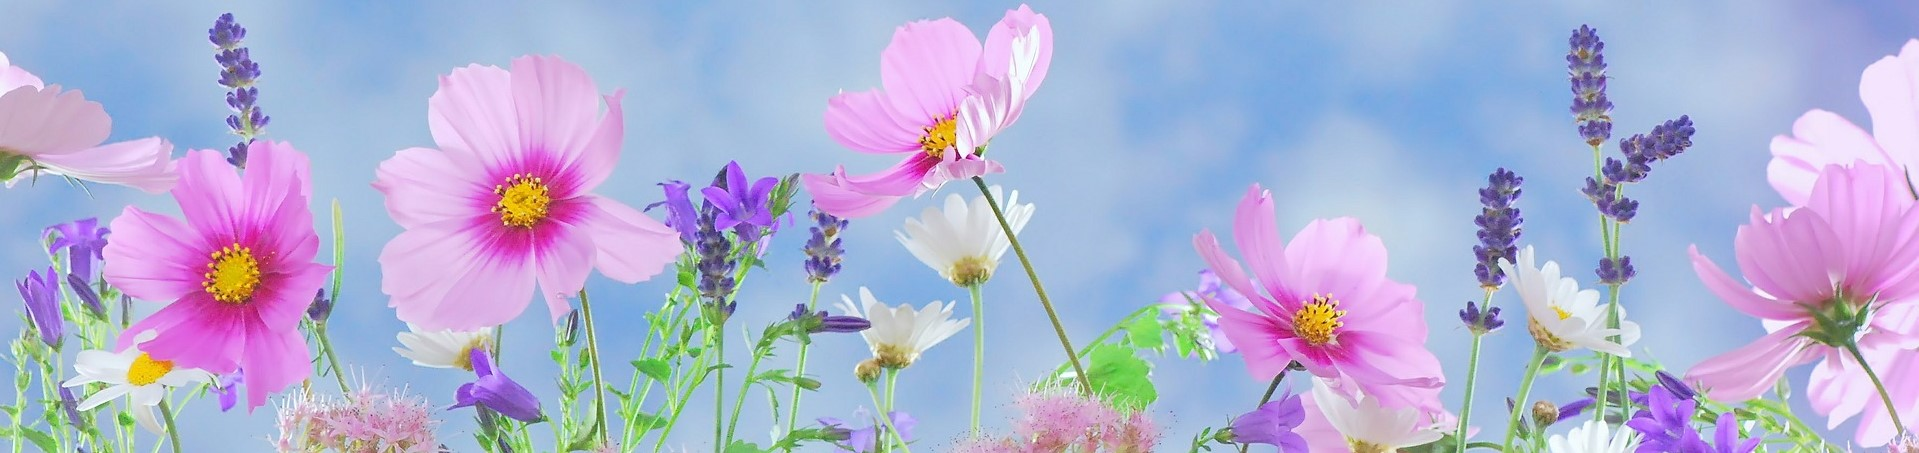 Pink and purple wild flowers